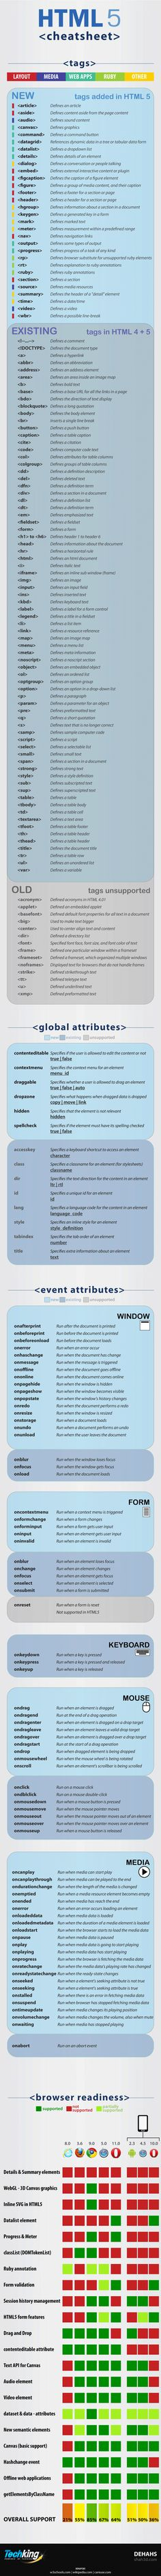 Ultimate html5 cheatsheet/Infographic